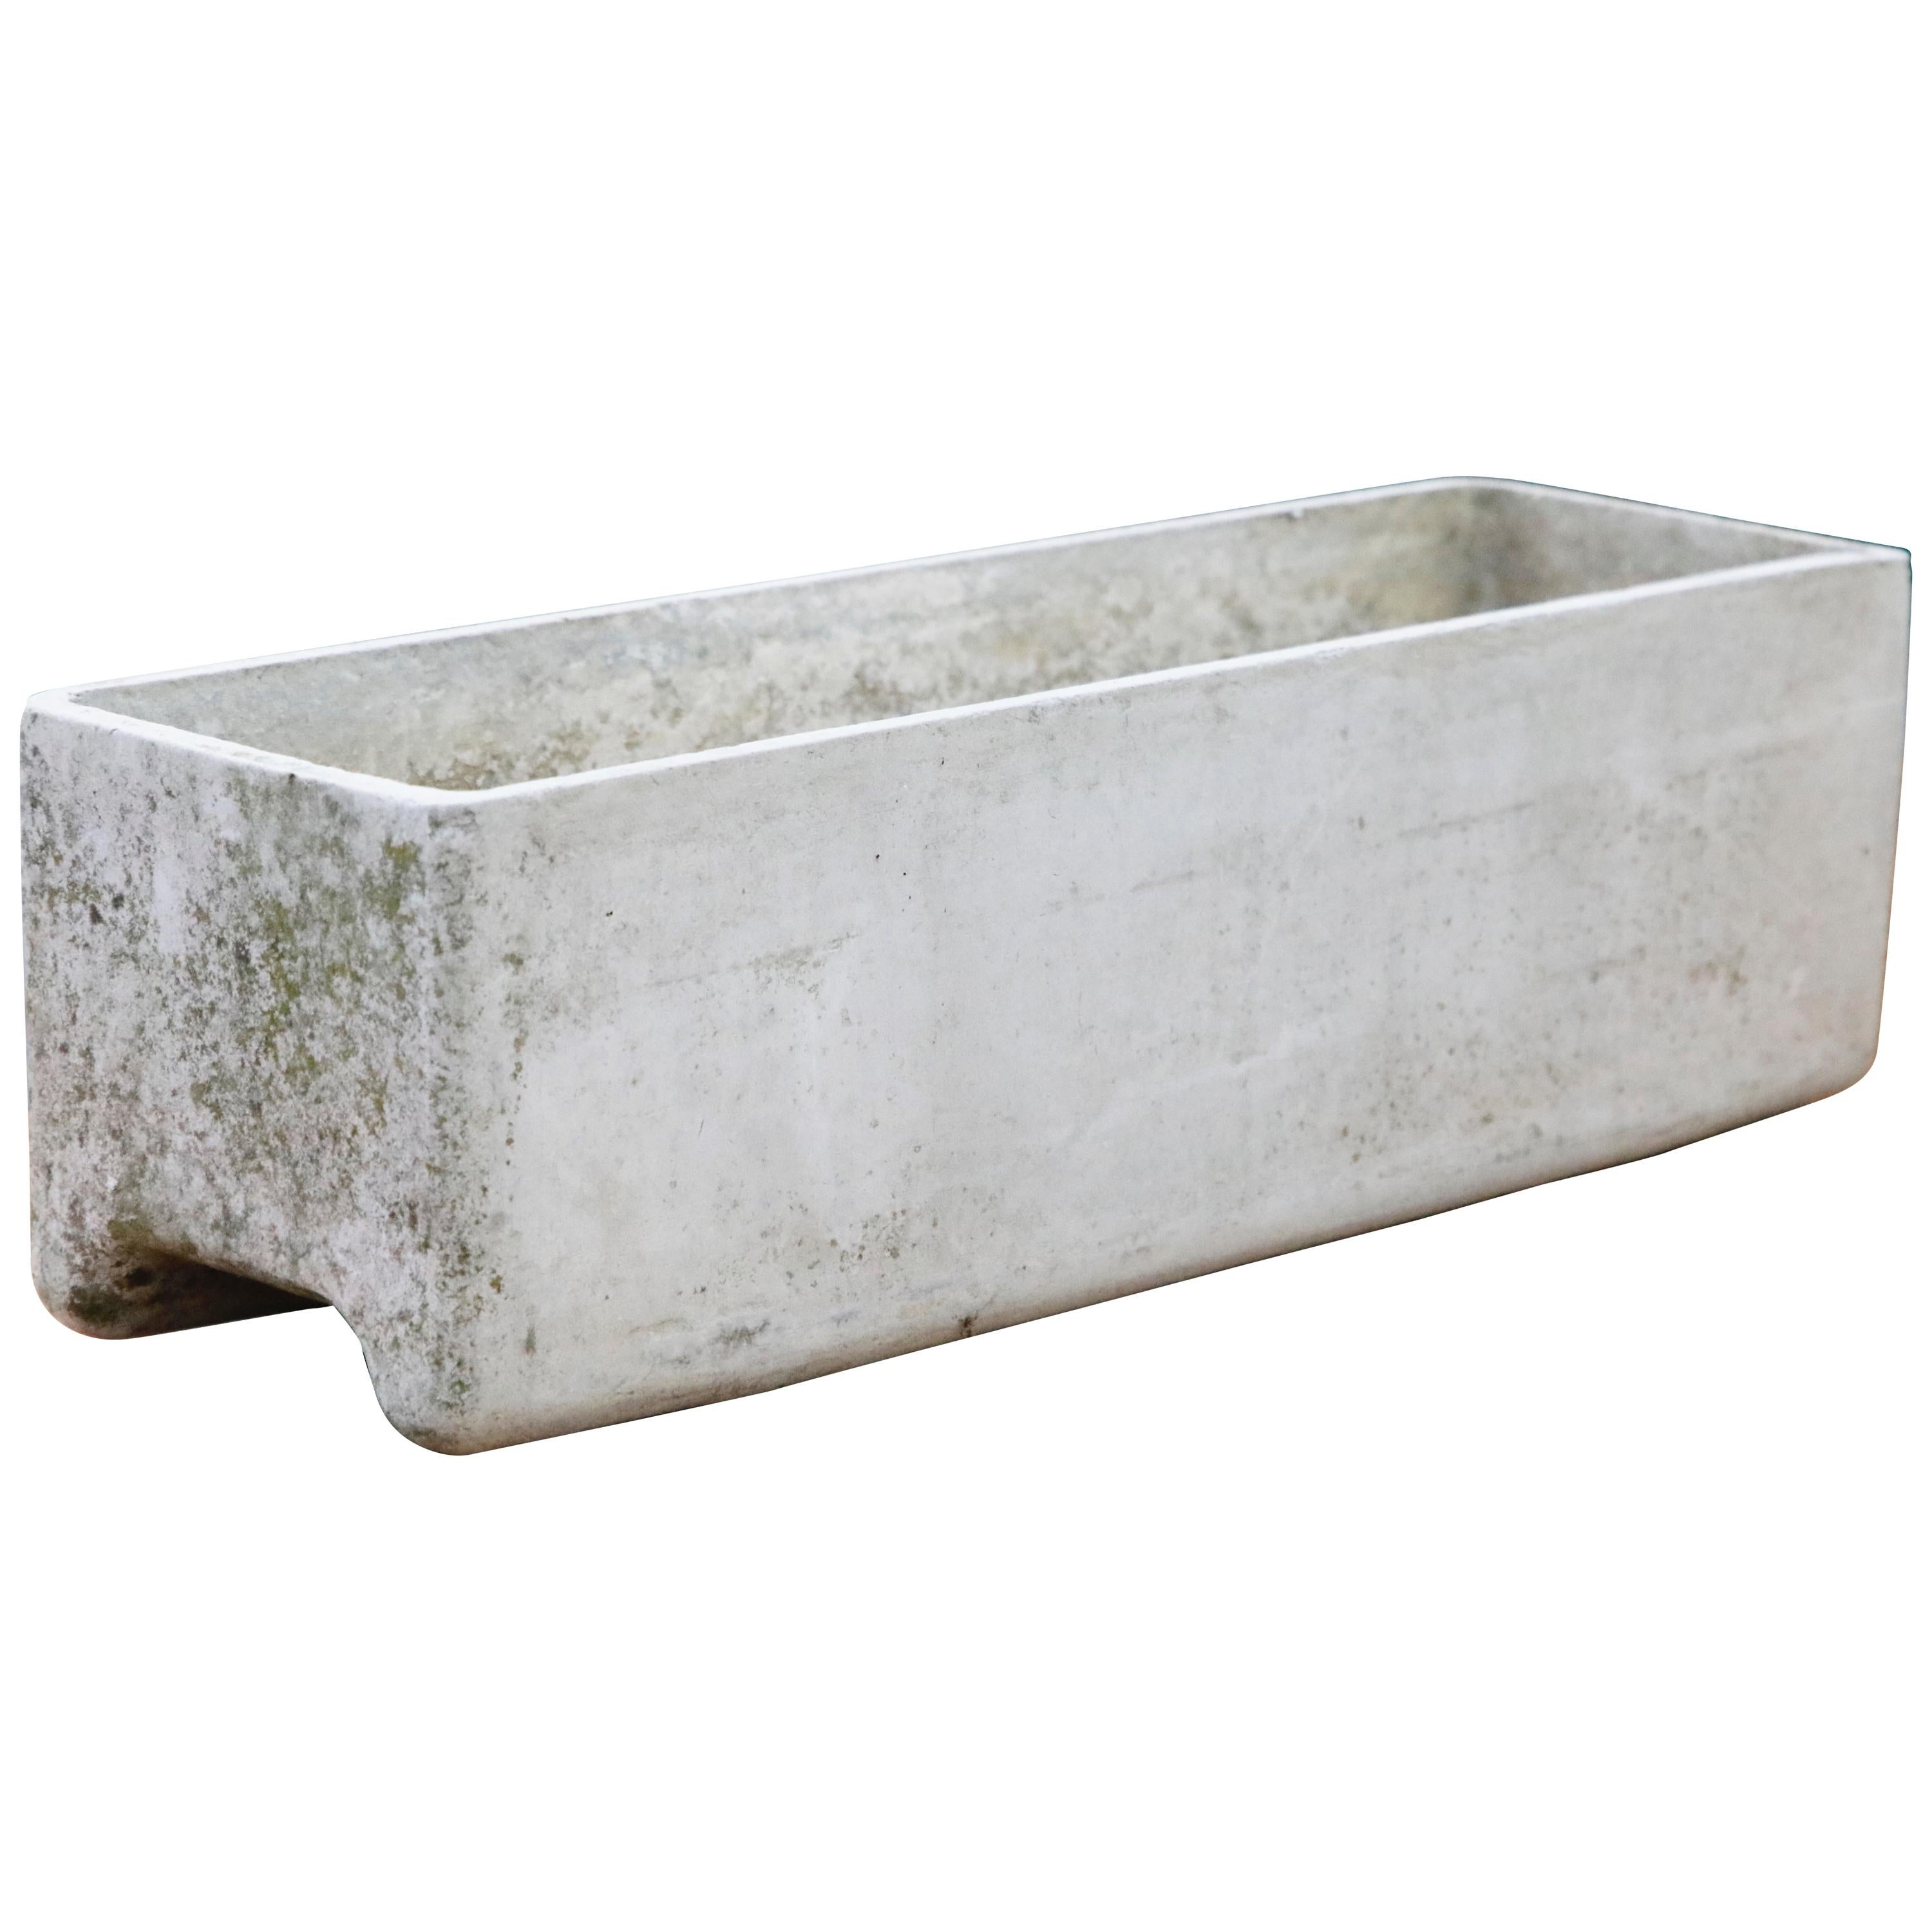 Willy Guhl for Eternit Large Rectangle Concrete Outdoor Planter, 1968, Signed